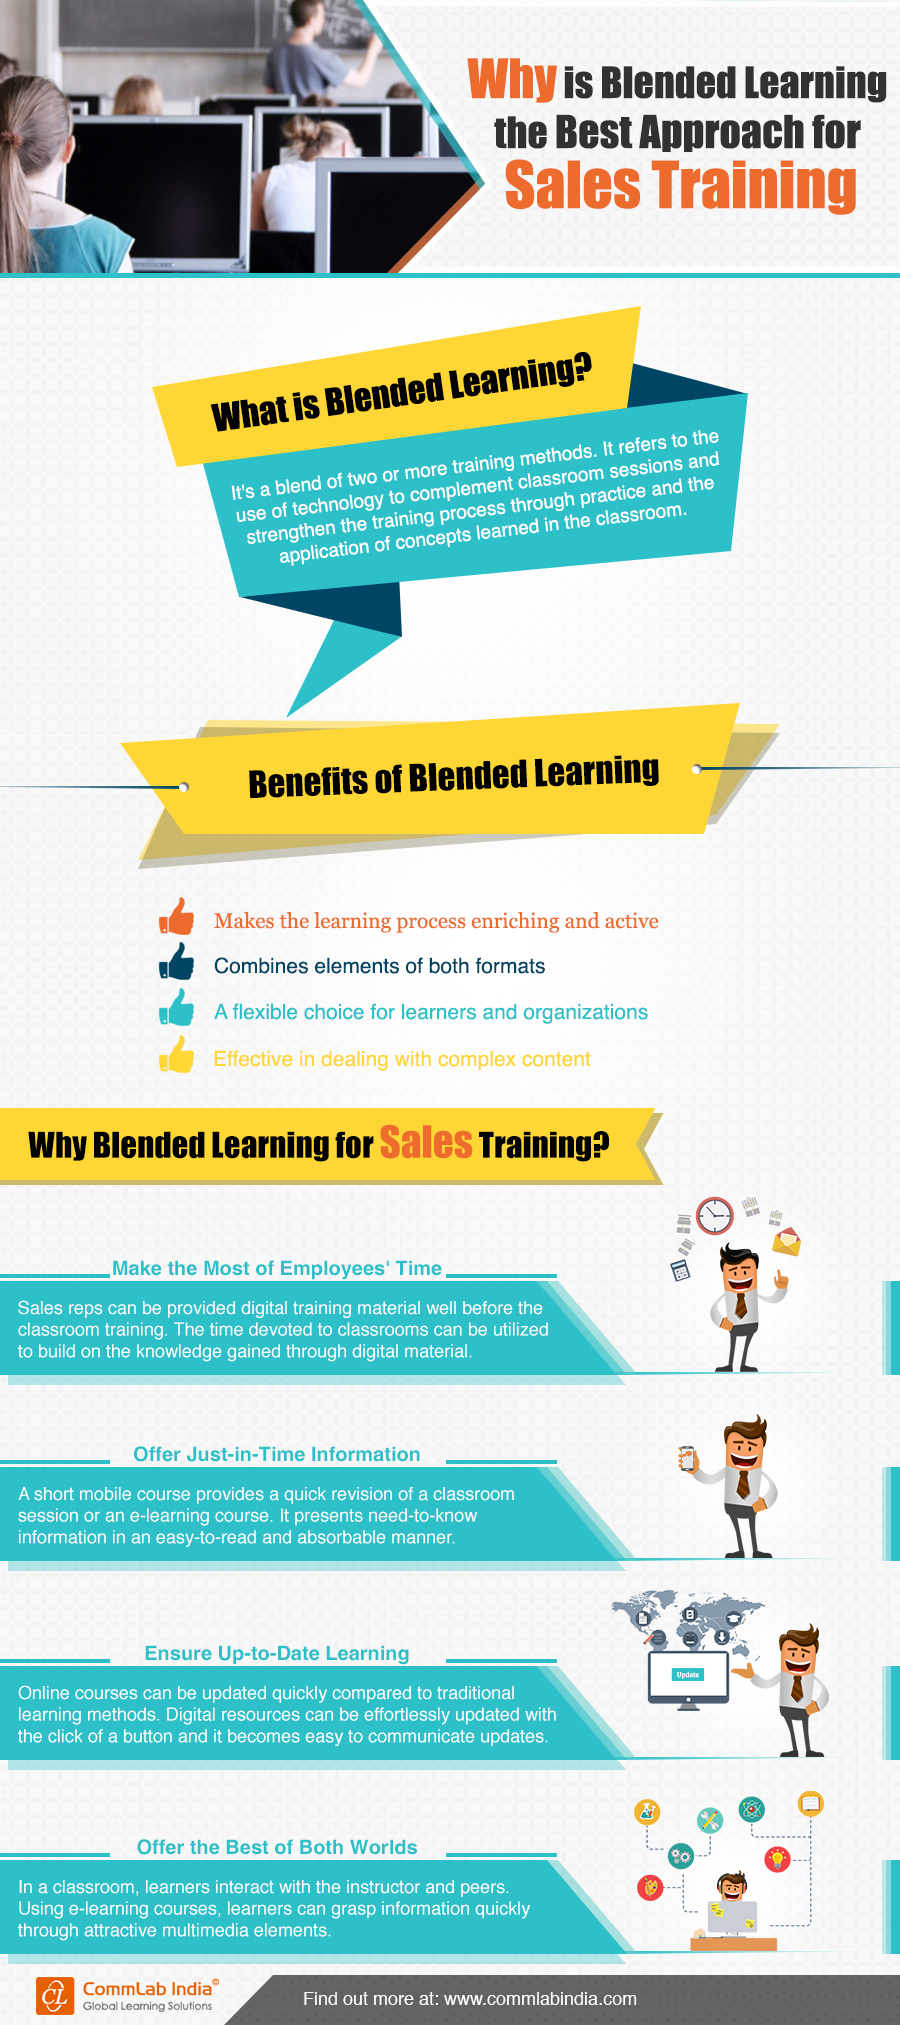 Why is Blended Learning the Best Approach for Sales Training [Infographic]